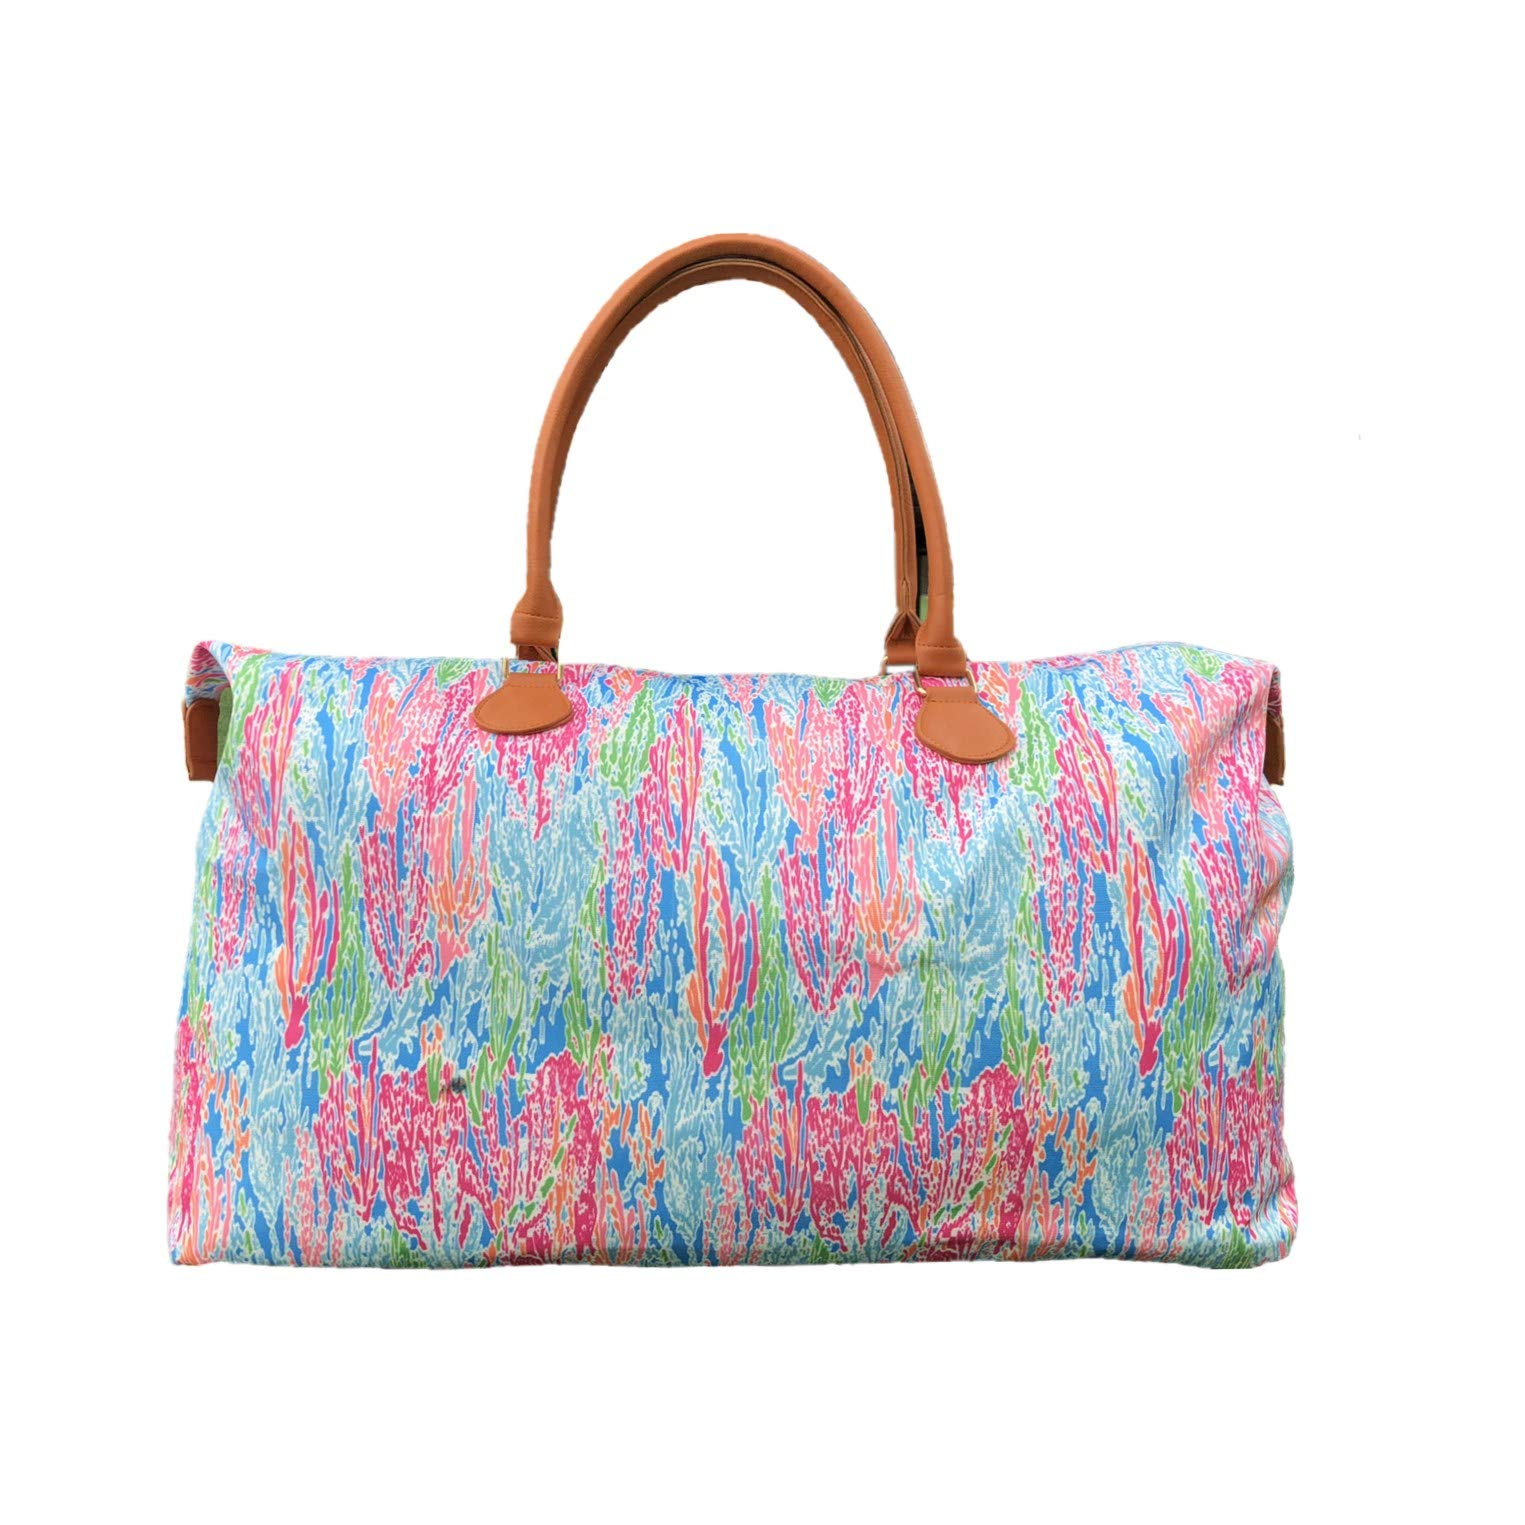 MONOBLANKS Lilly Inspired Print Weekender Bag,Canvas Leather Travel Totes Duffel Bag (Coral)